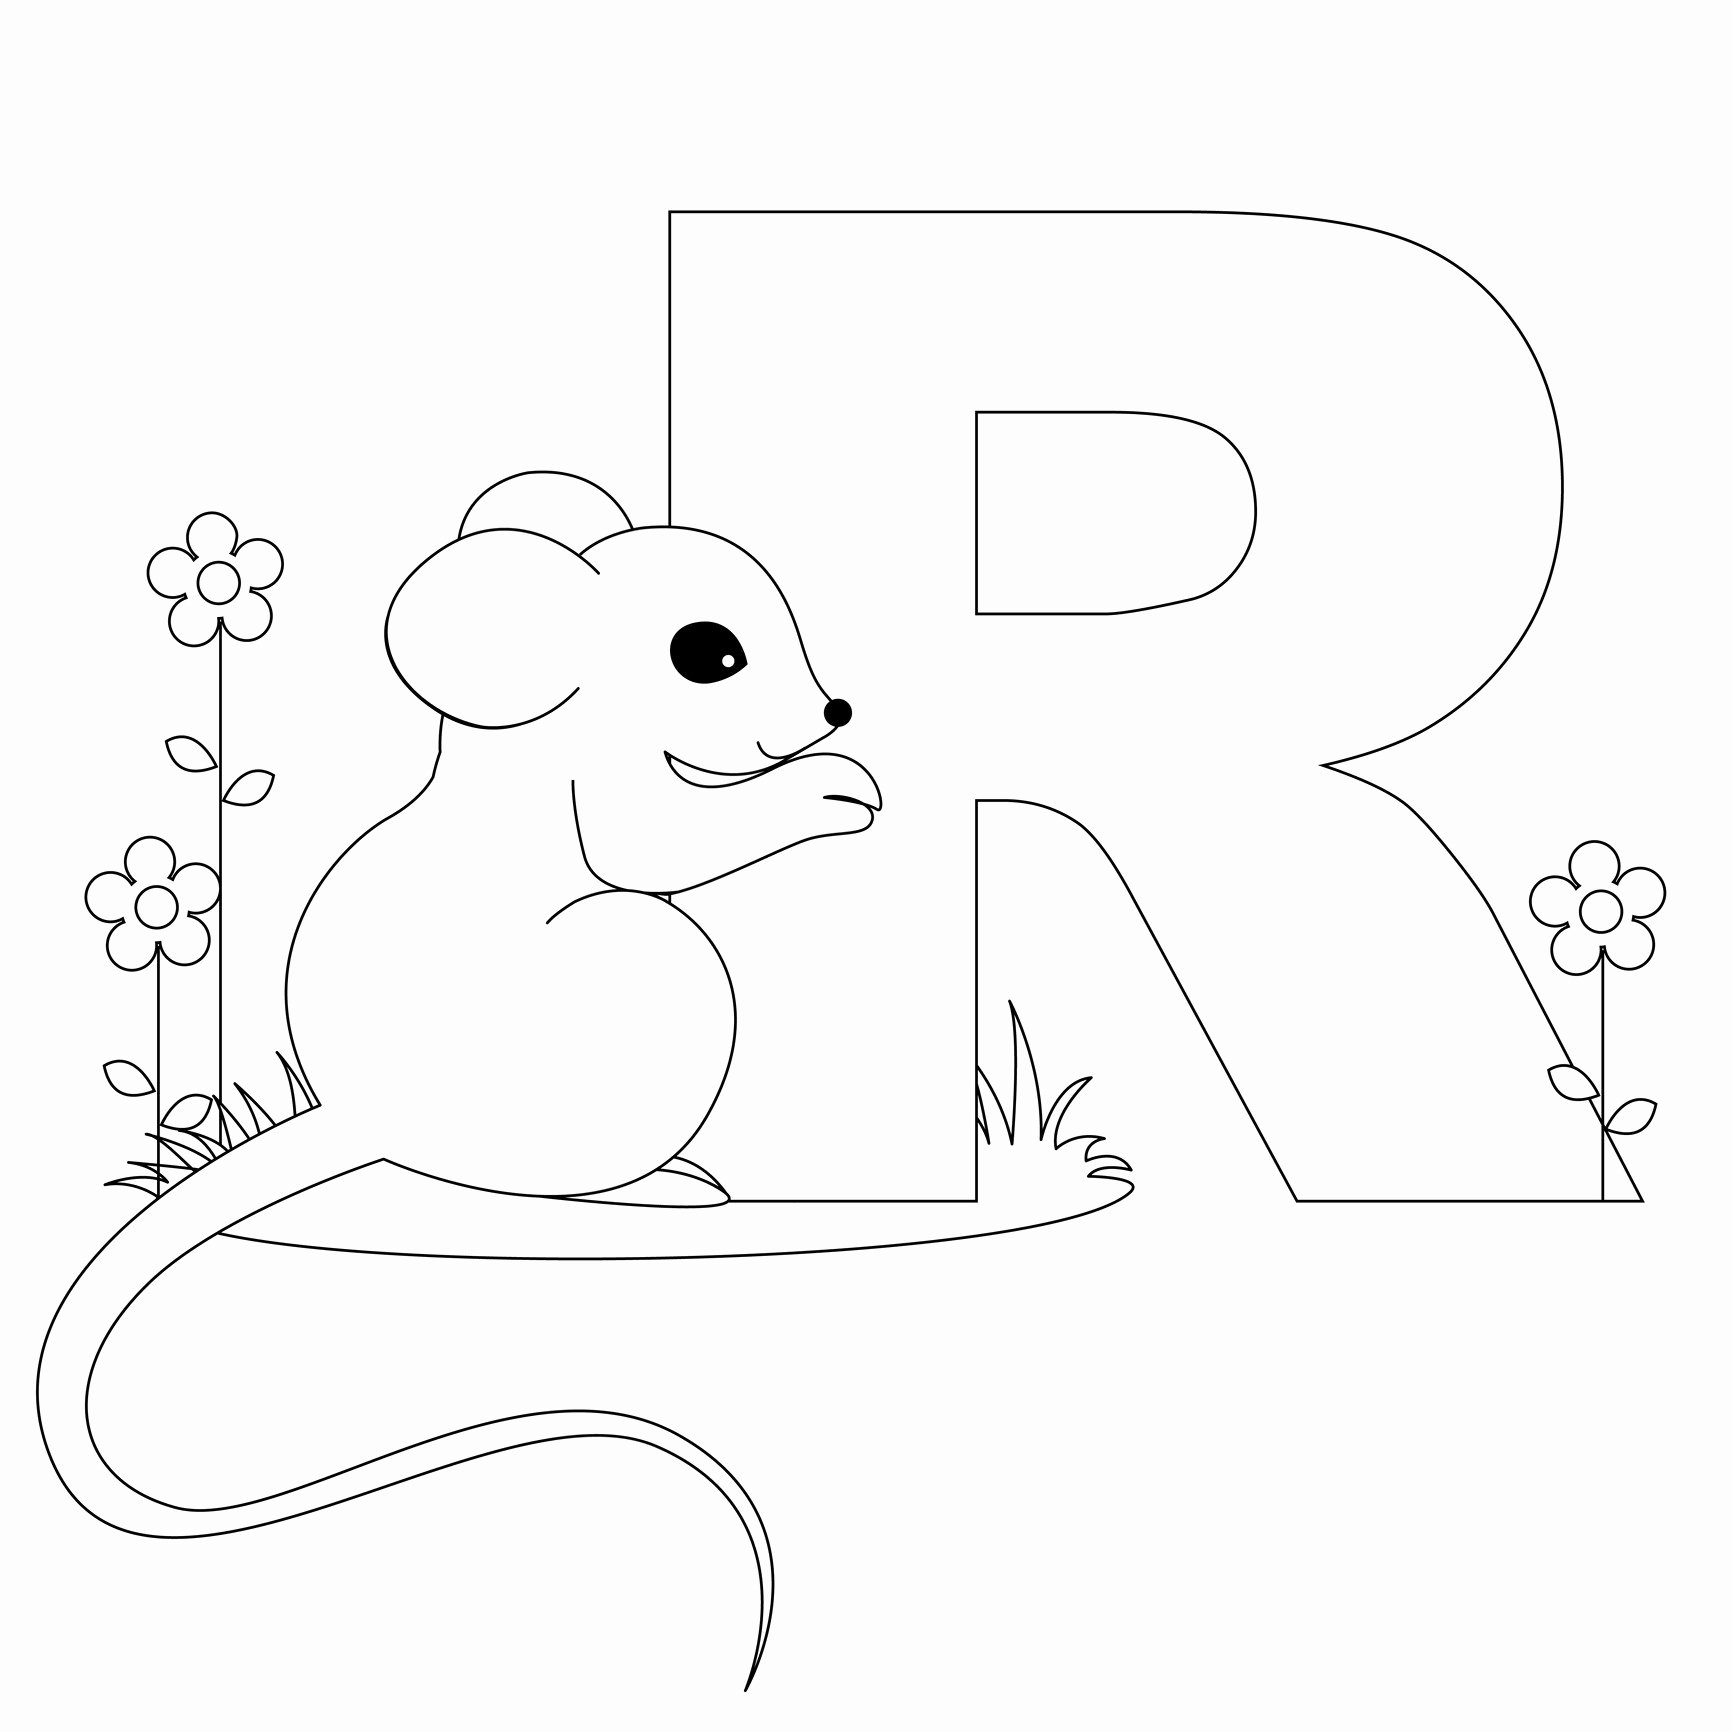 Printable Alphabet Letters Free Lovely Free Printable Alphabet Coloring Pages for Kids Best